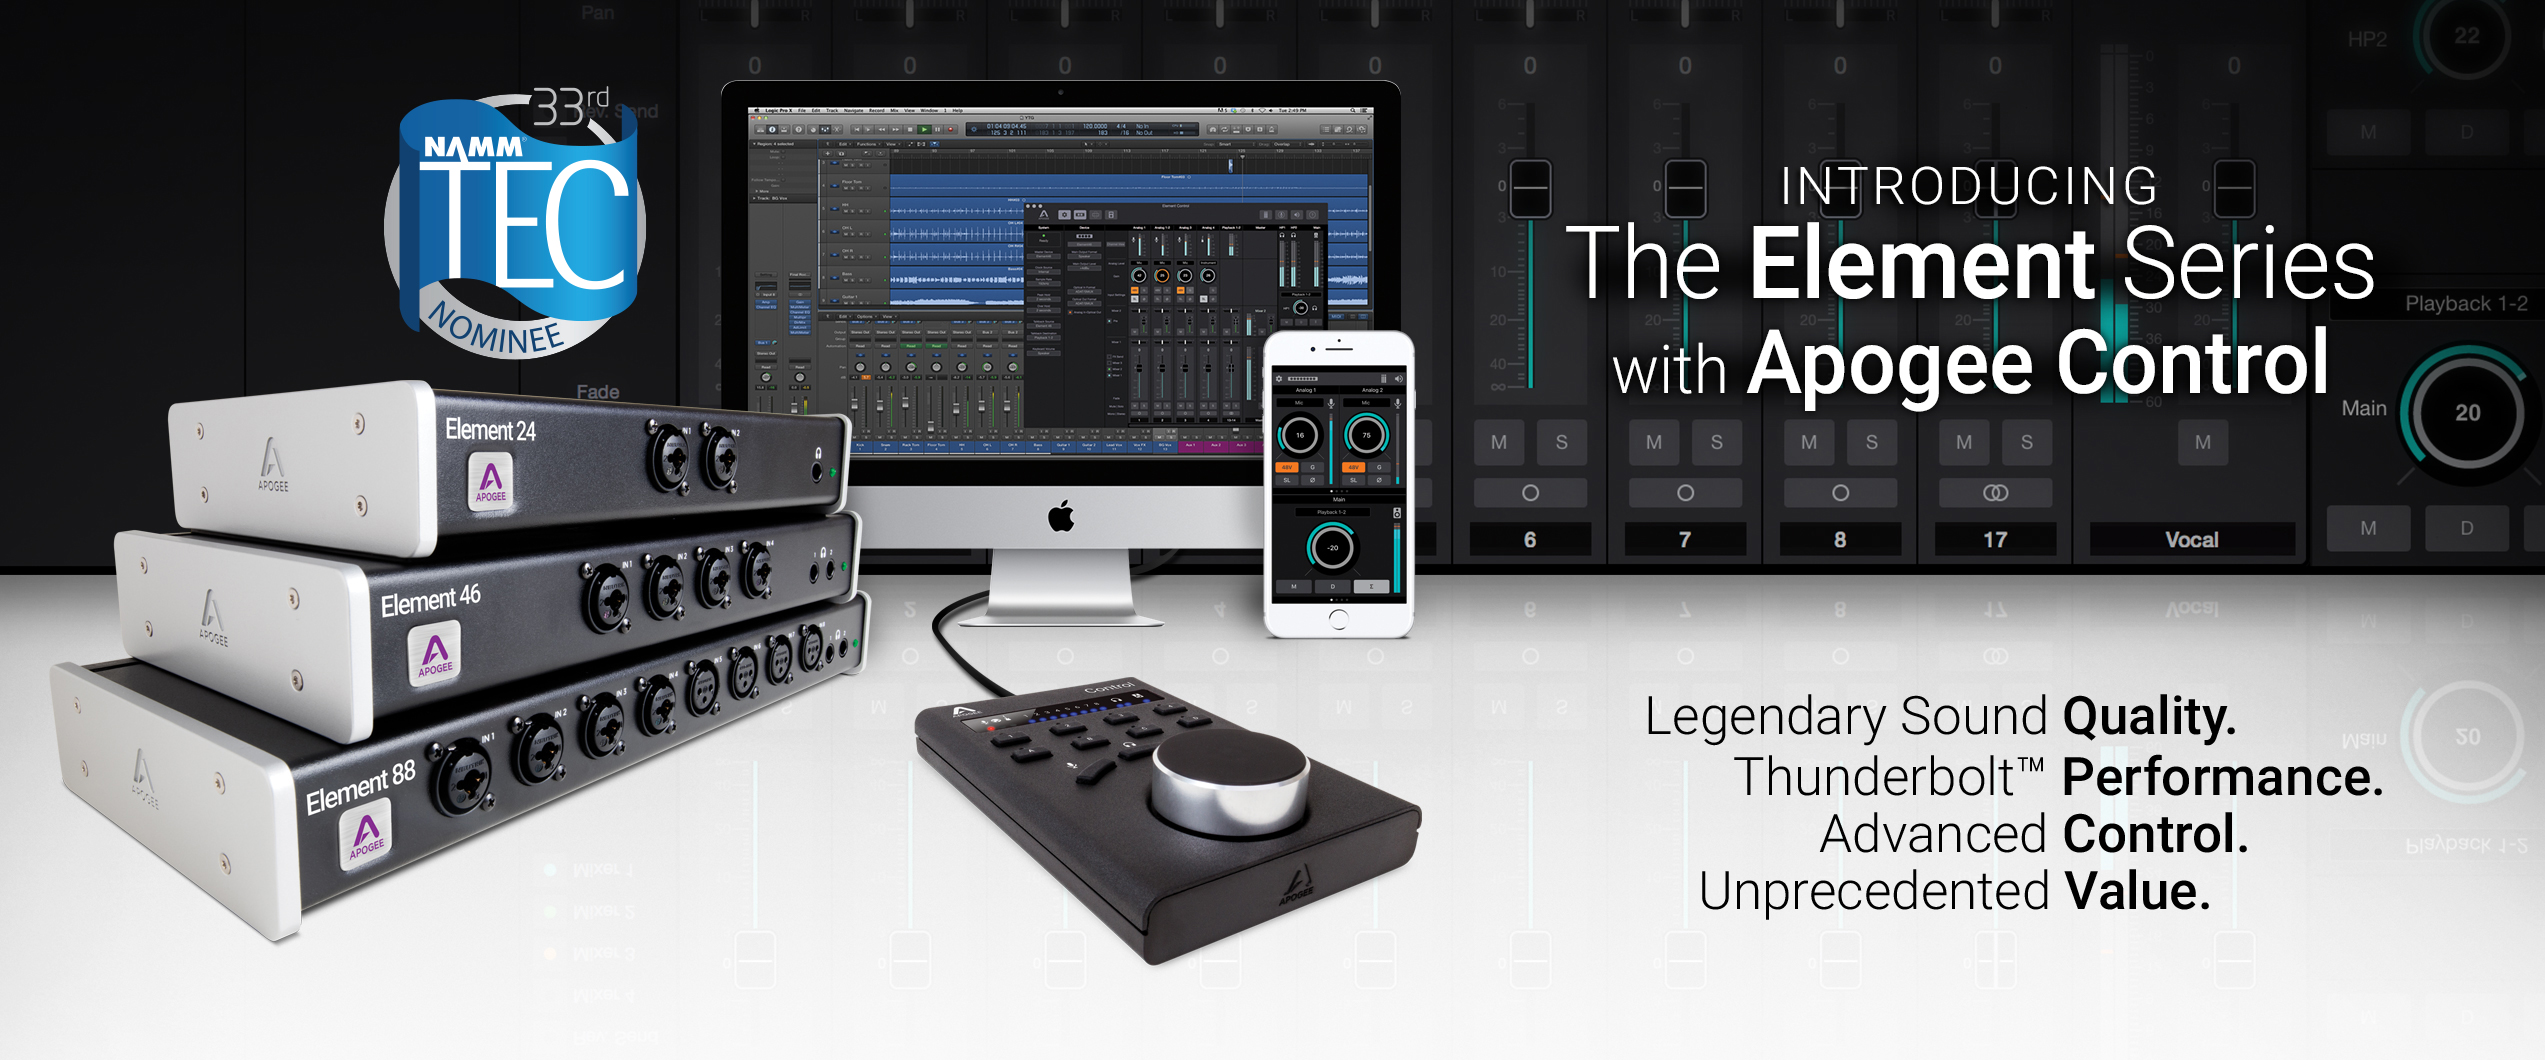 Introducing The Element Series with Apogee Control